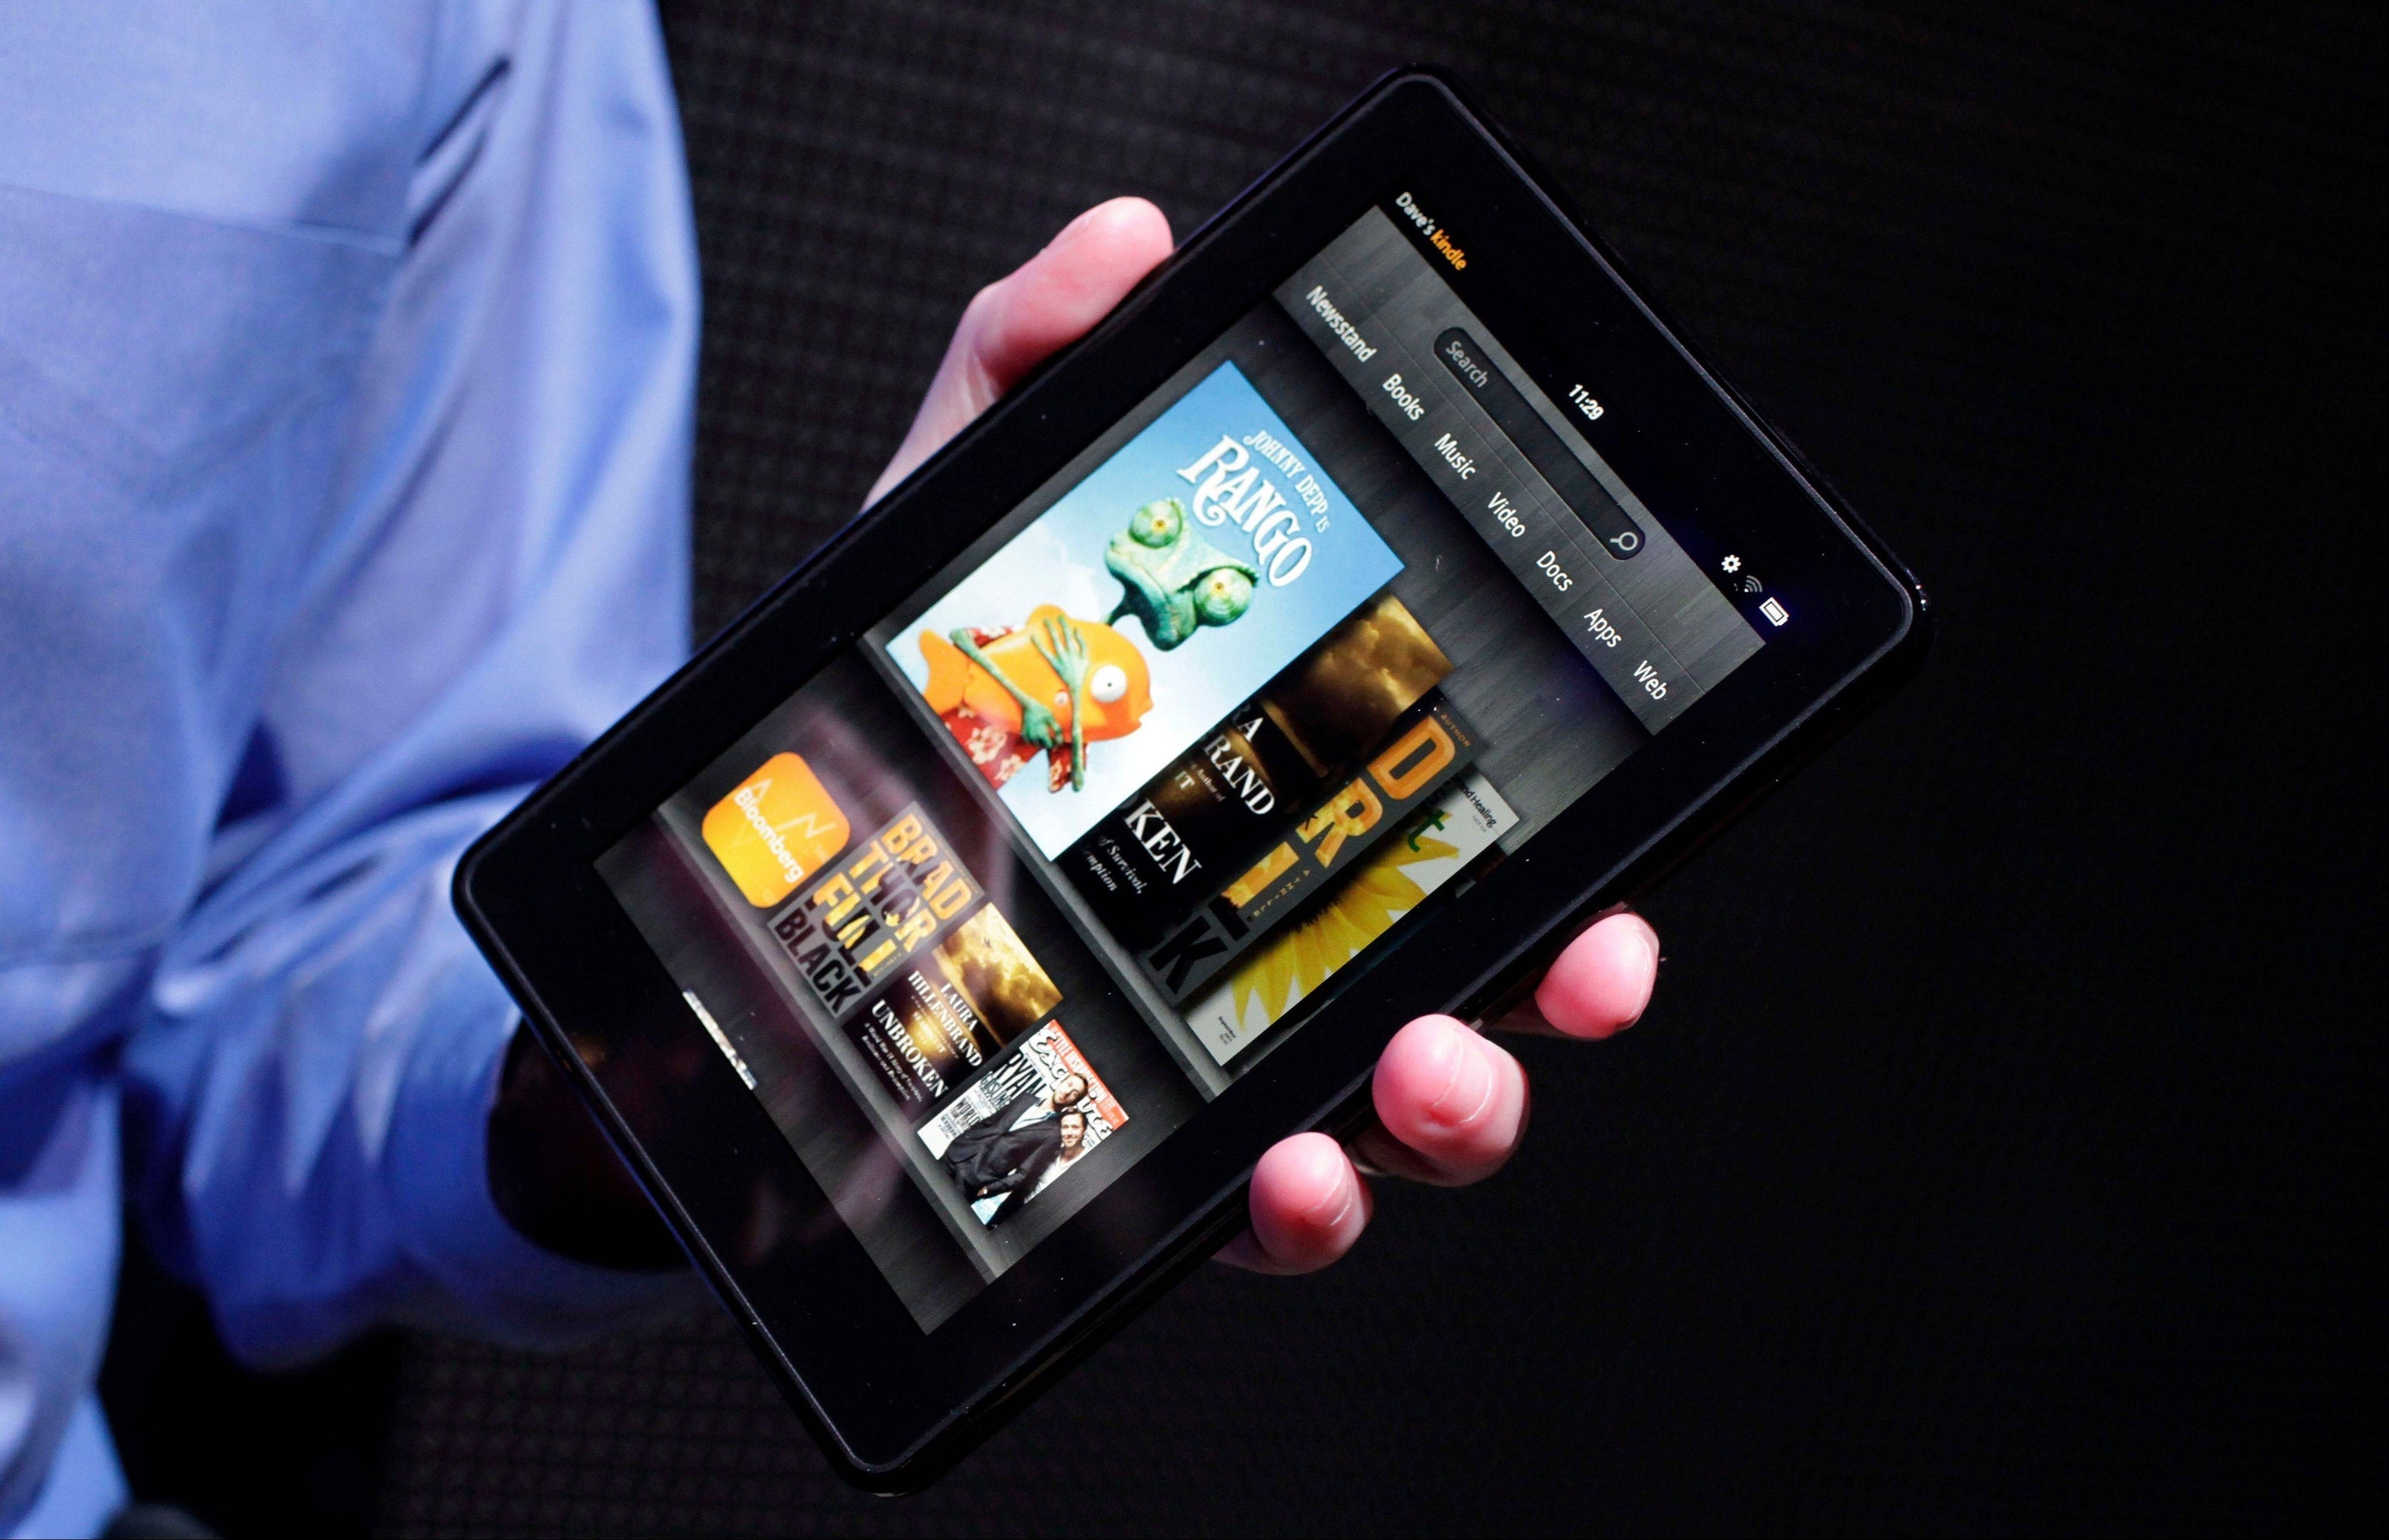 Amazon.com Inc. quenched the Kindle Fire on Aug. 30 saying its first tablet computer is now sold out. The Internet retailer has a news conference scheduled for next Thursday in Santa Monica, Calif. It�s widely expected to reveal a new model of the Fire there.